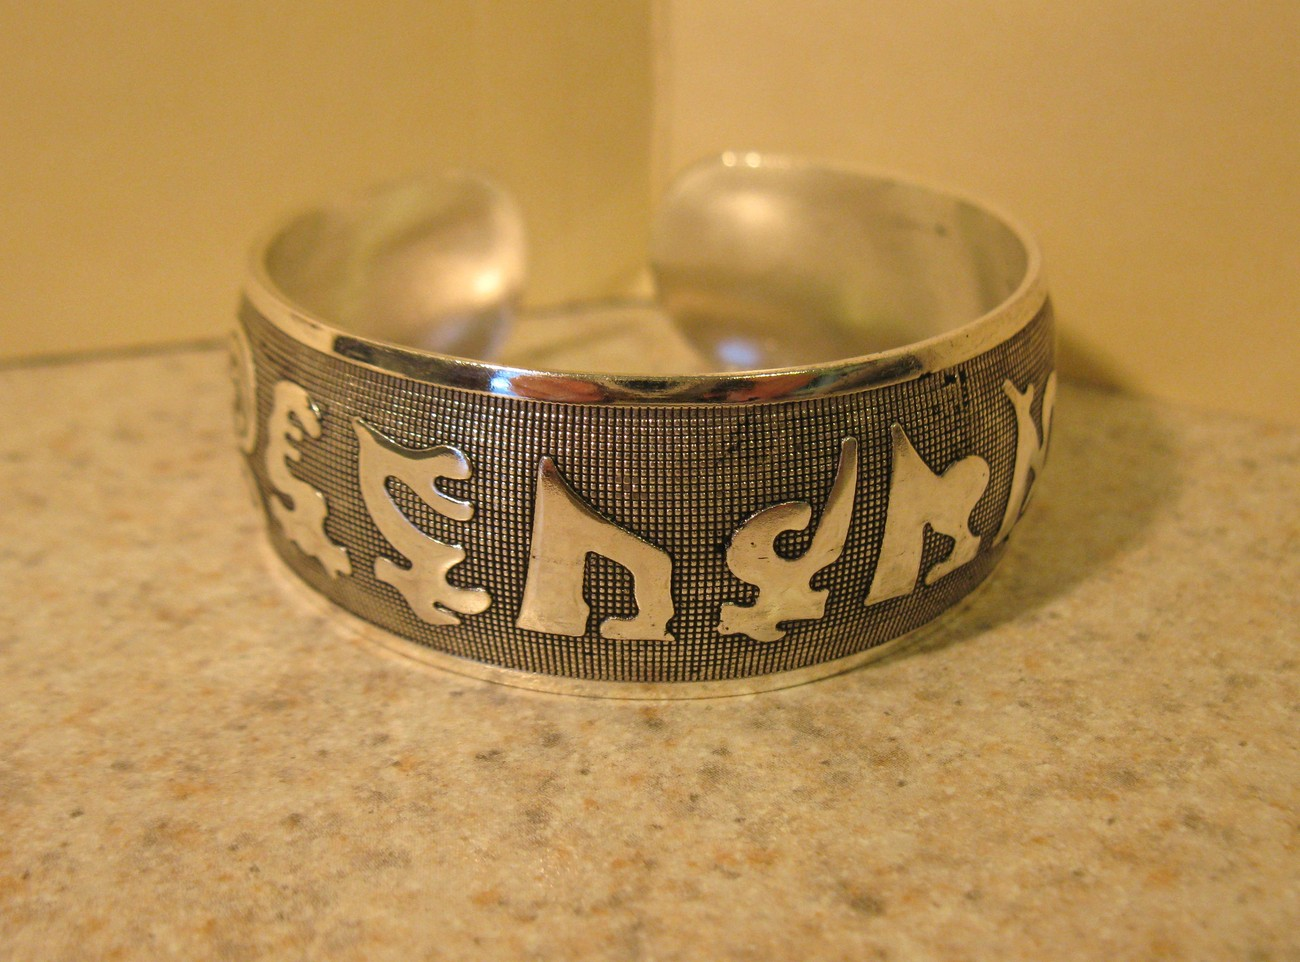 BRACELET SILVER PLATED WIDE CUFF CARVED SYMBOL DESIGN New #423